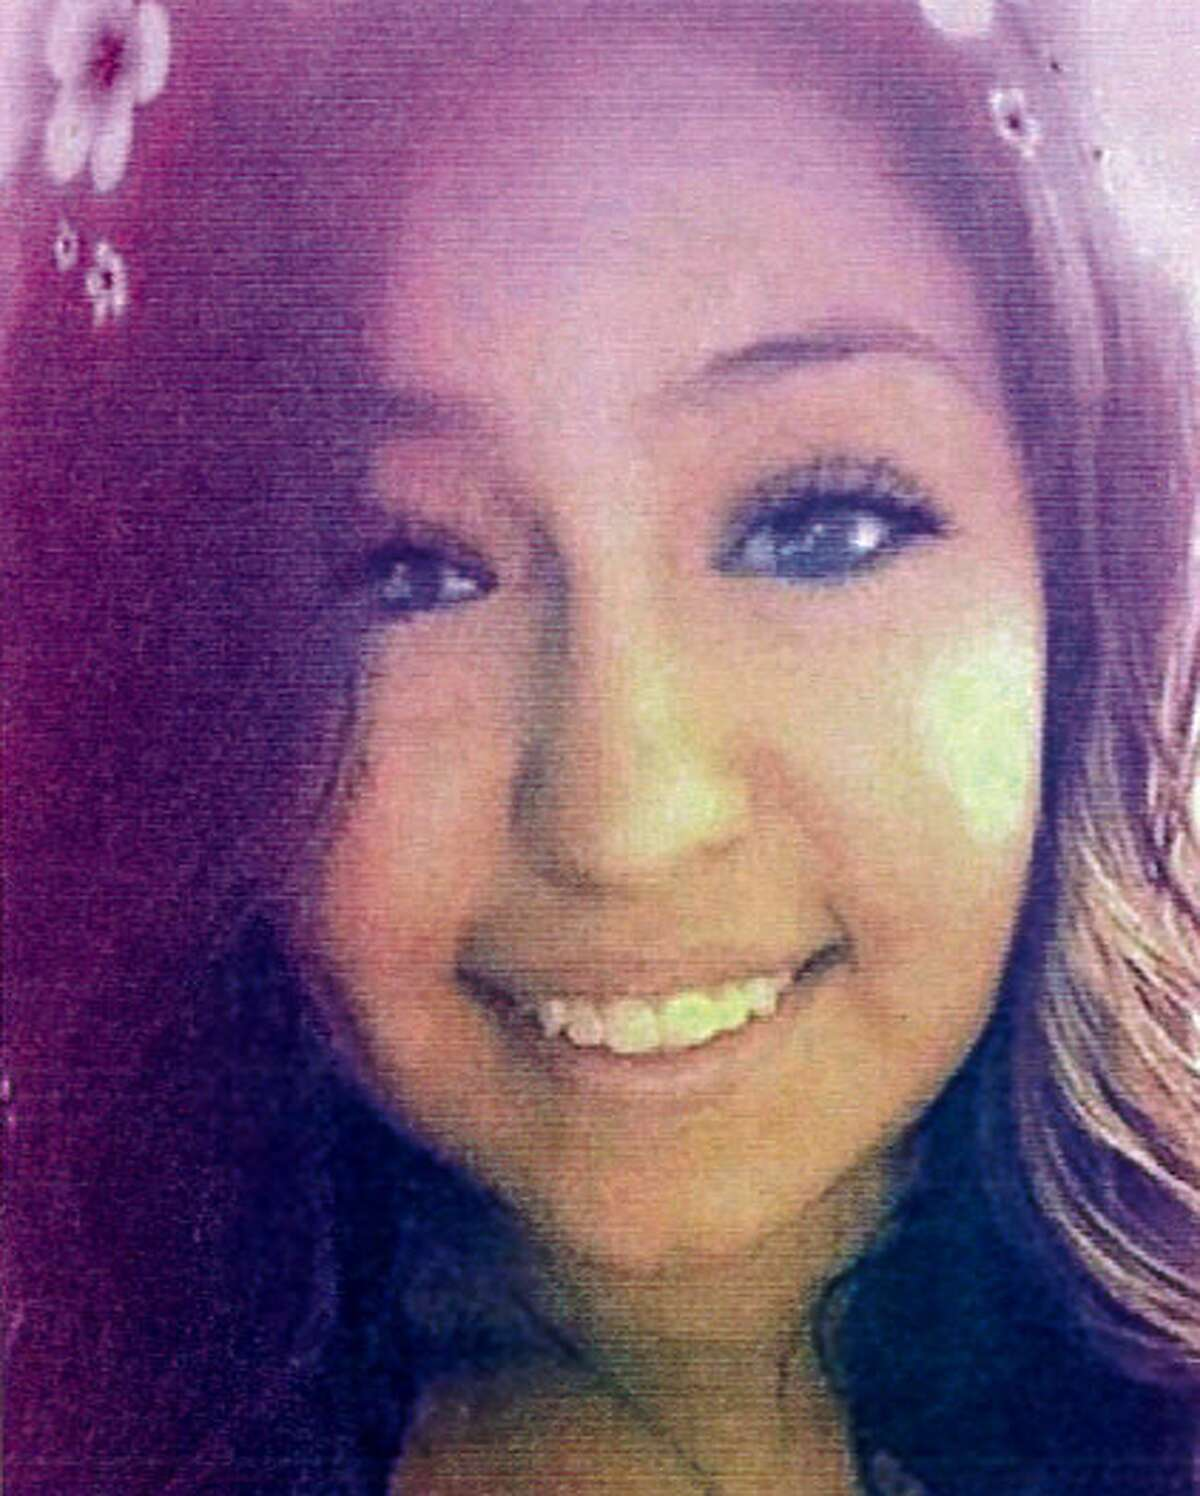 Abigail Gonzalez, 17, has been missing from her Spring home since Dec. 31, 2017.